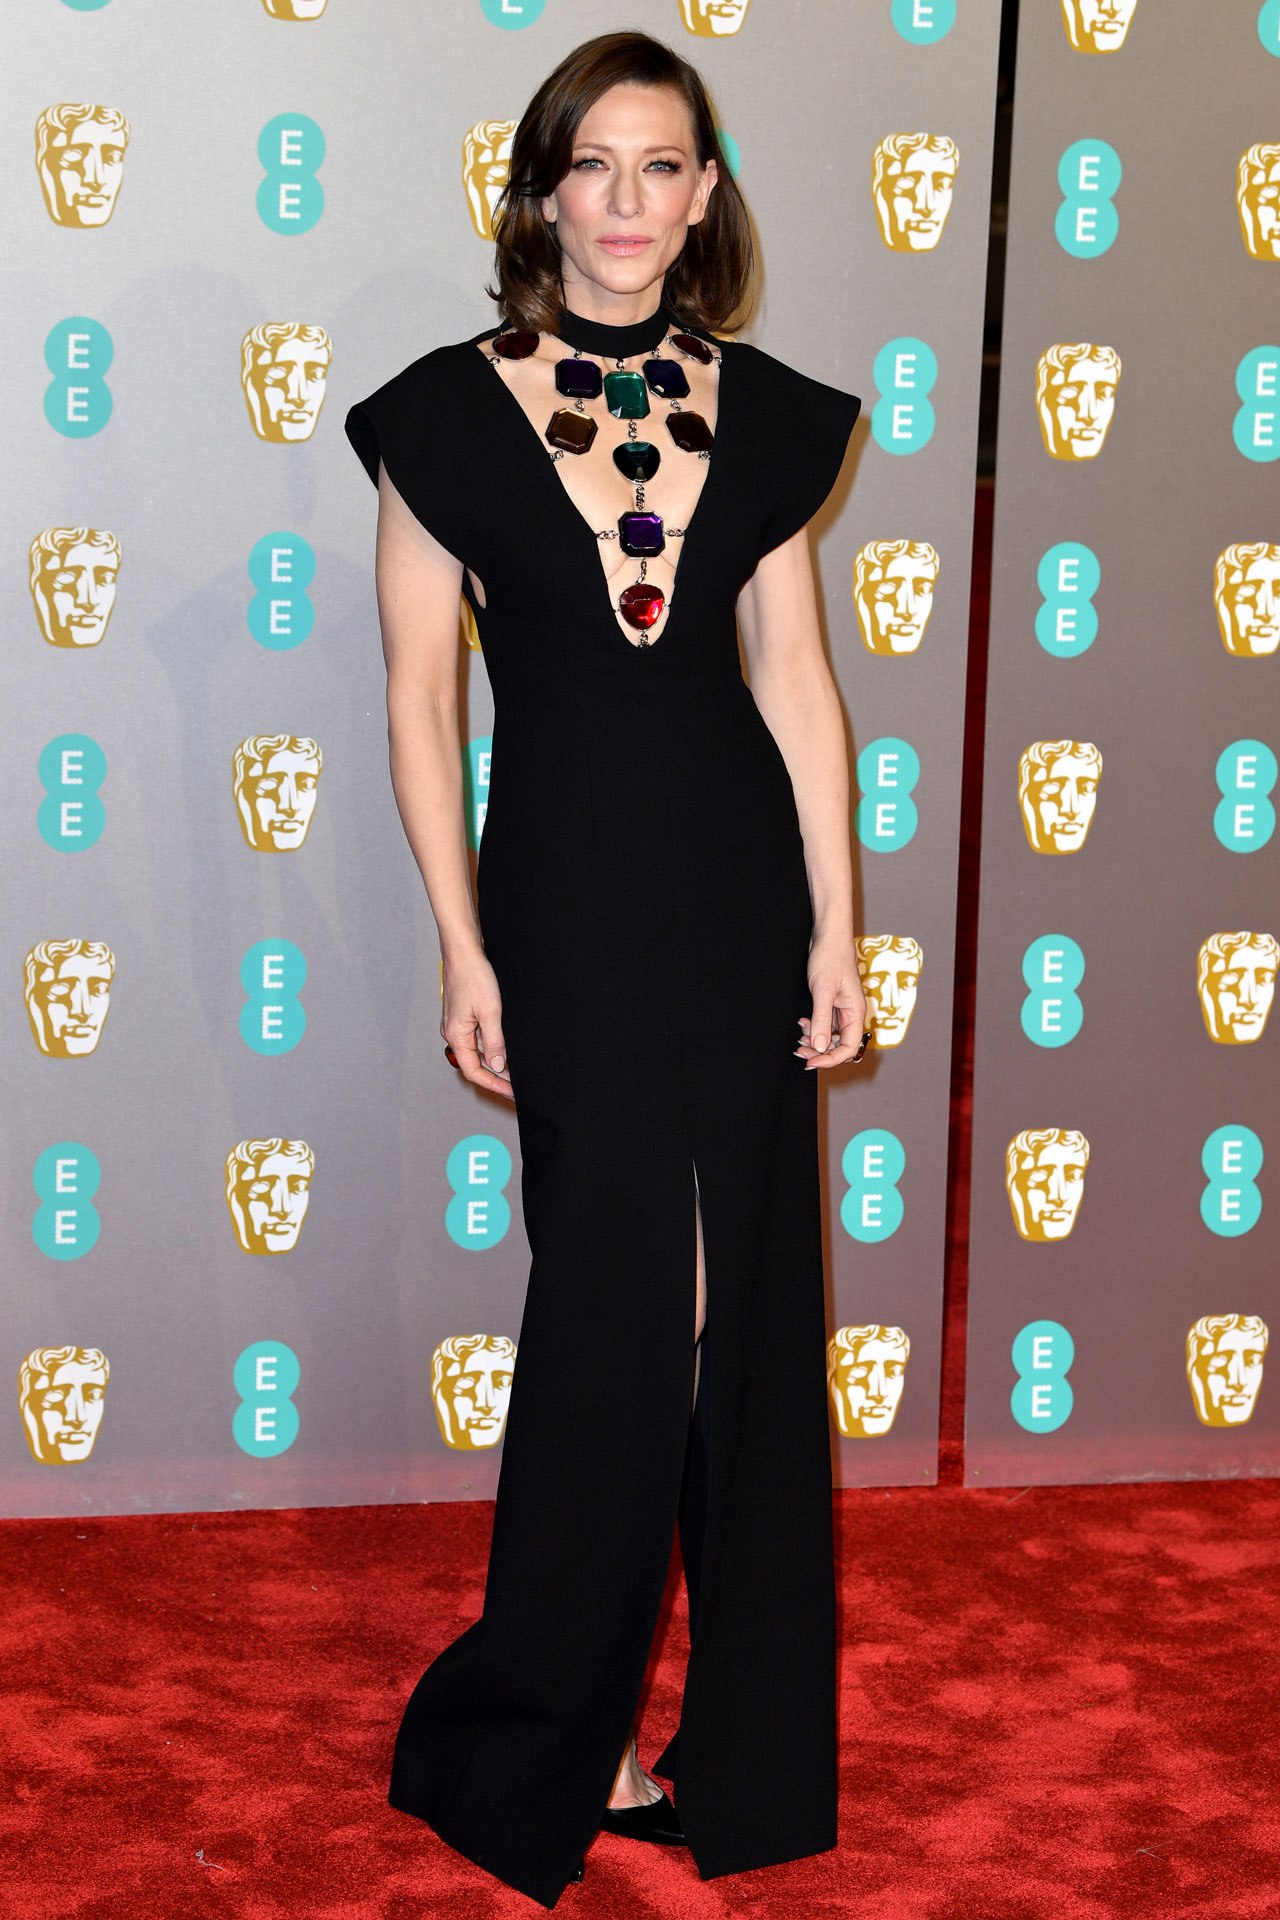 What they wore on the 2019 BAFTAs red carpet